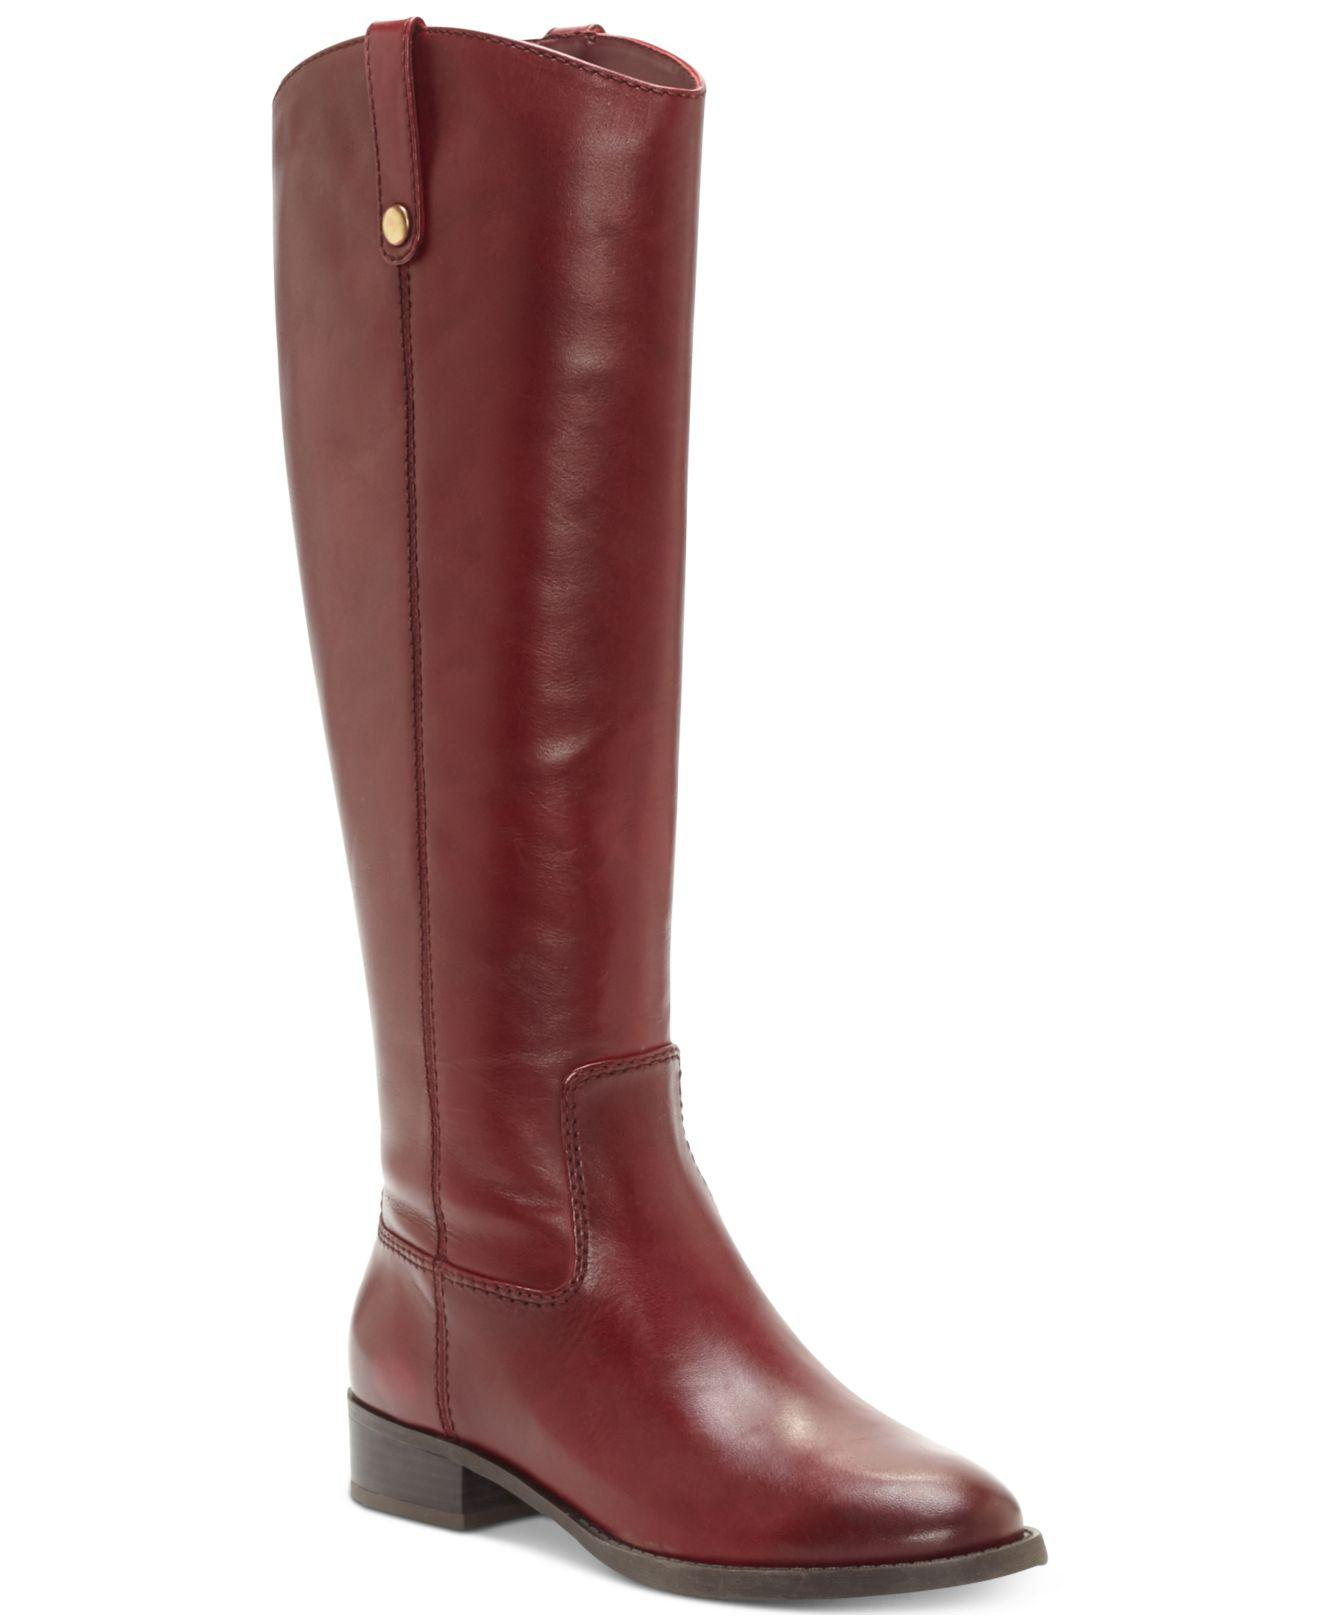 INC International Concepts Womens Fawne Leather Round Toe Knee Size 6.5 Cognac